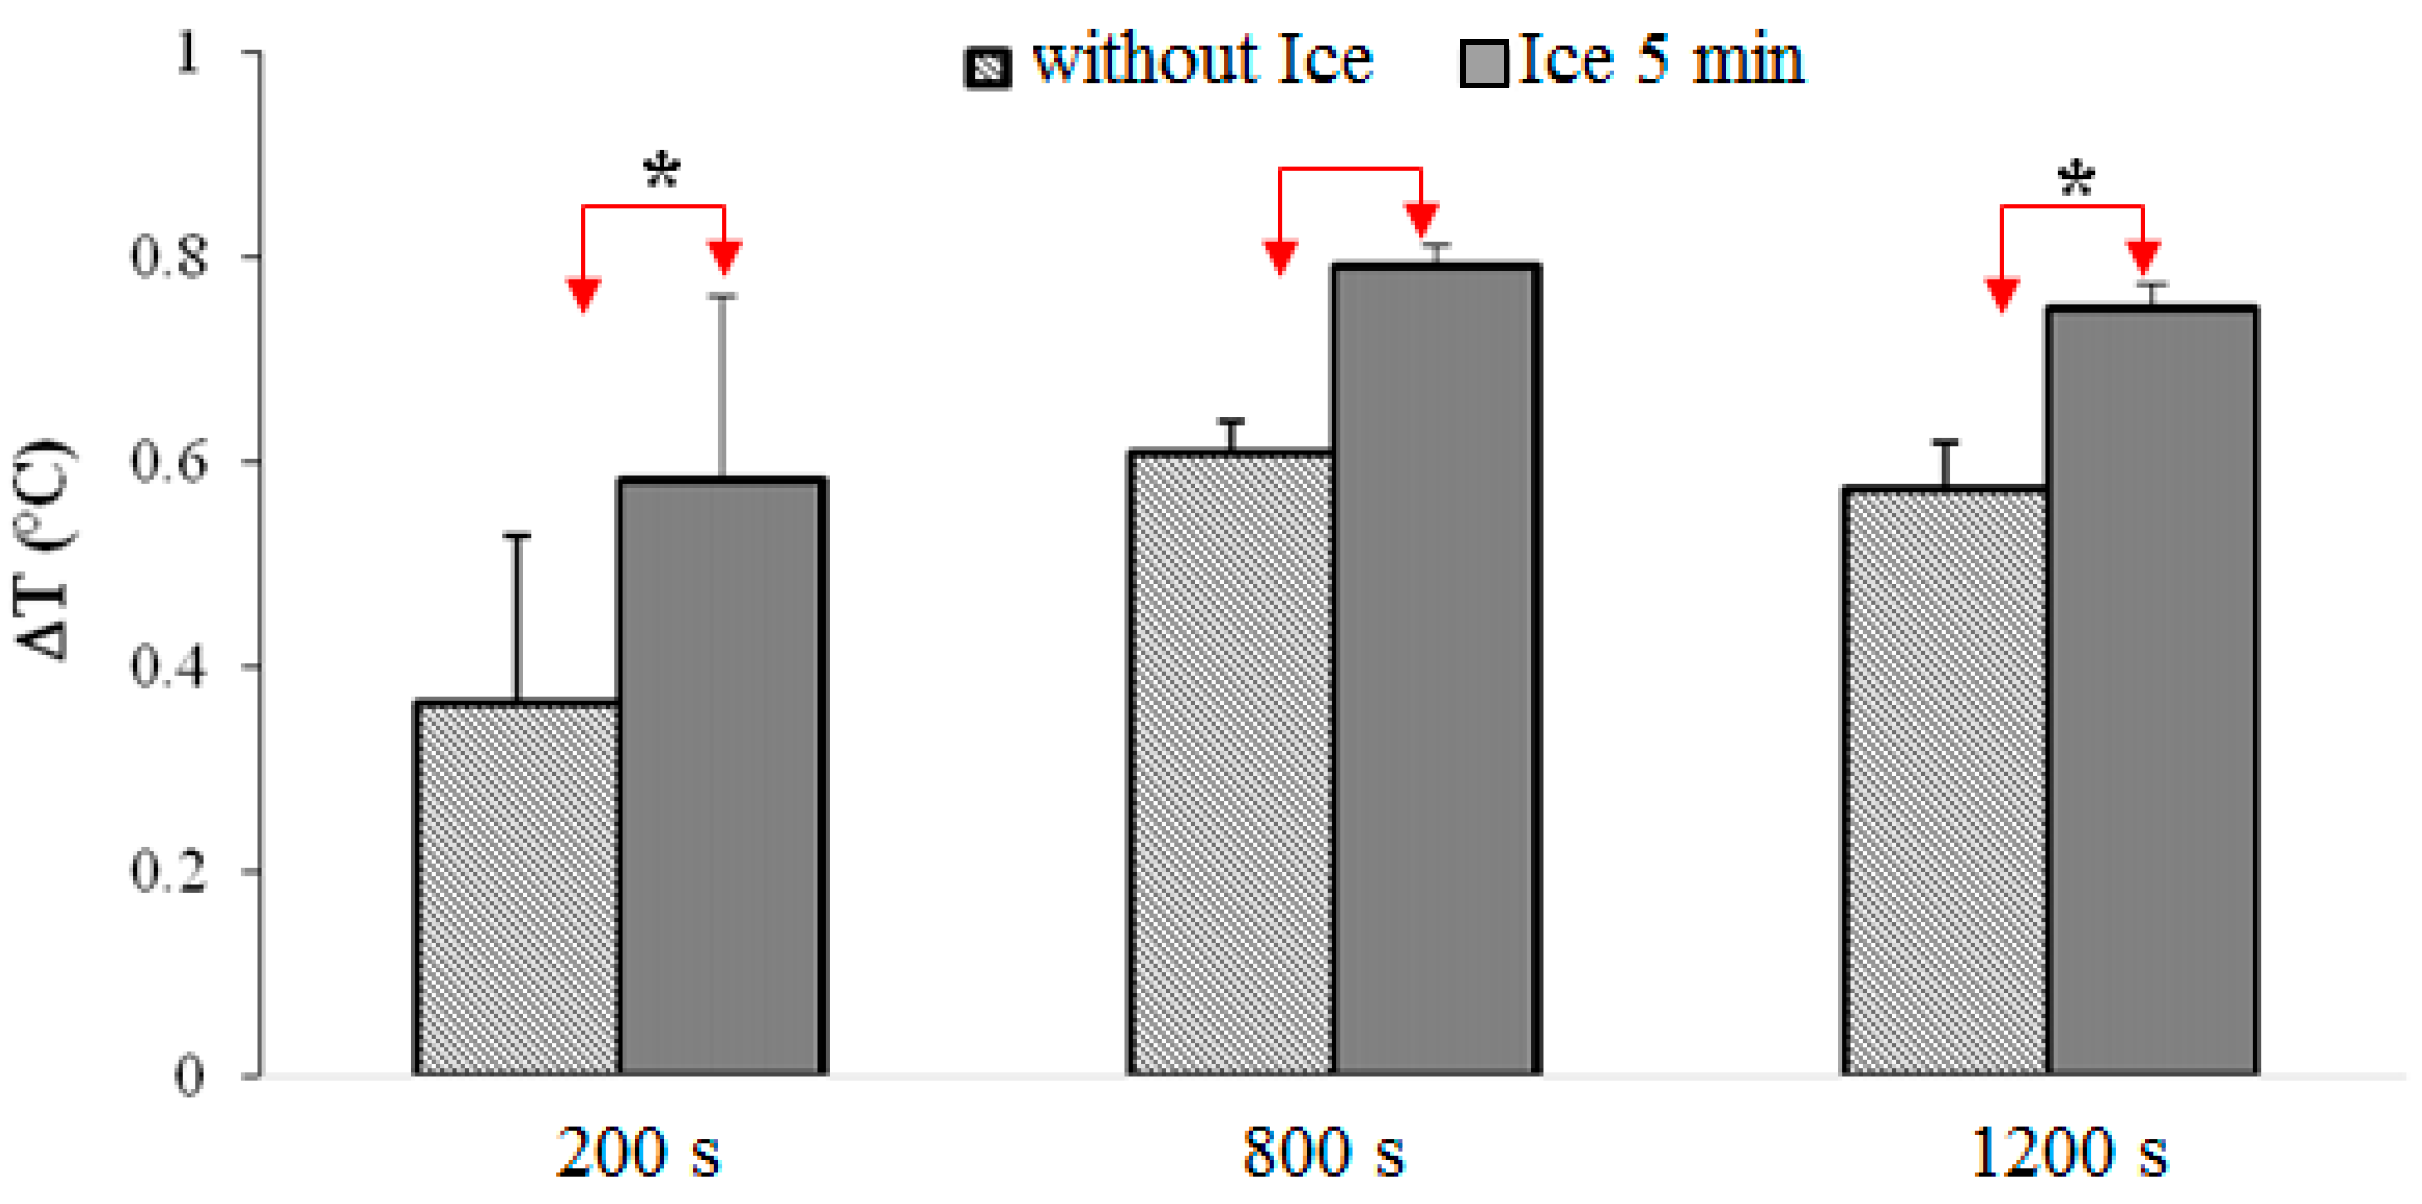 immediate and late effect of cryotherapy on balance Background: cryotherapy application is commonly used as a physical therapy tools with many advantages, however numerous researchers have stated decrease in subject balance which affects quality of movement following cryotherapy application, thus the purpose of study was to investigate the immediate and late effect of cryotherapy on ankle.